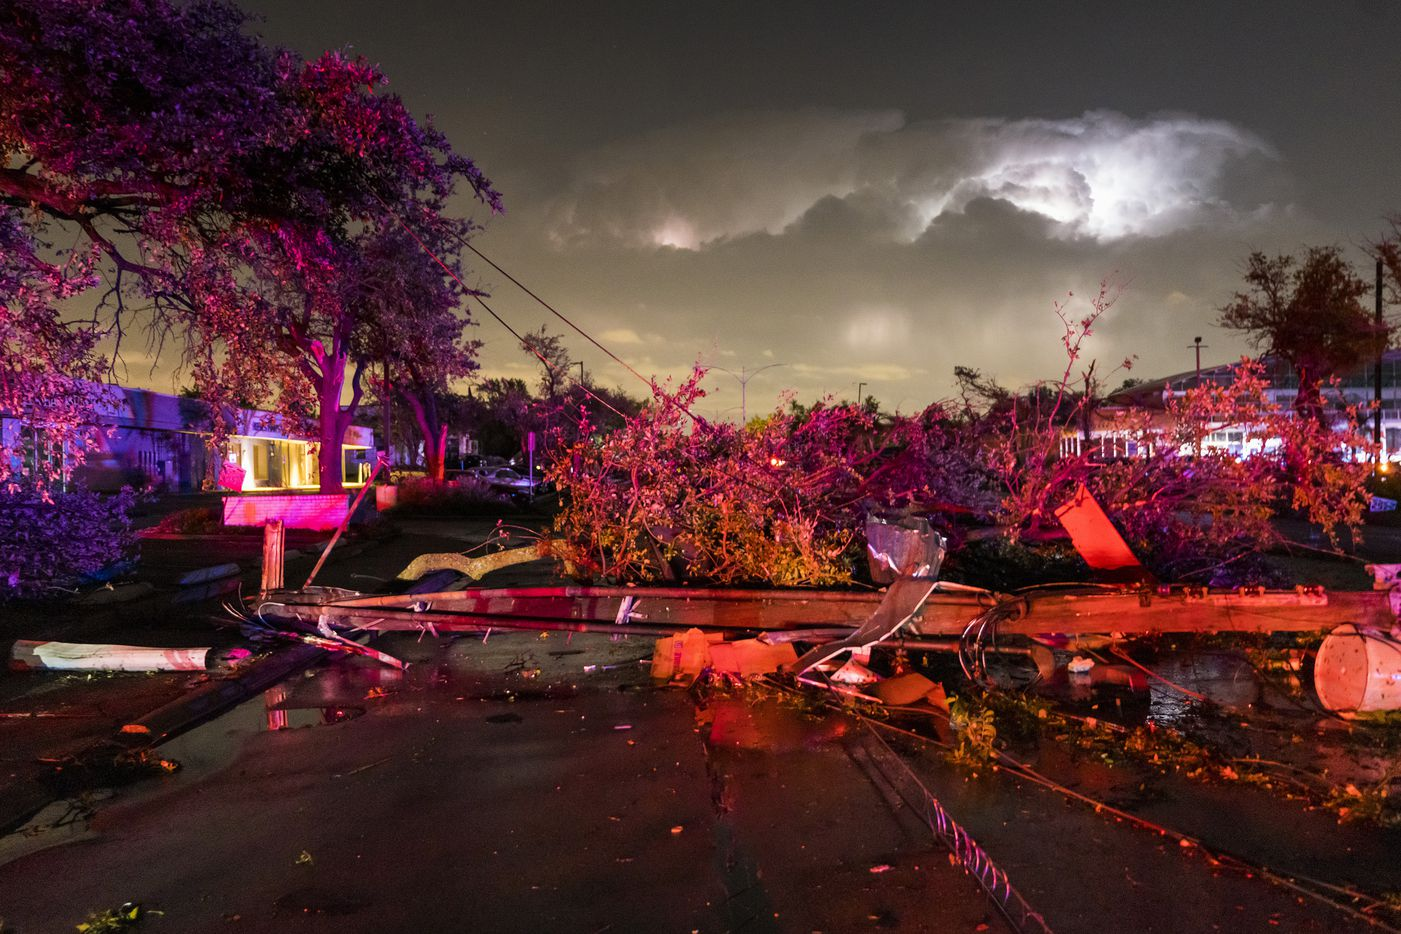 Downed power lines and trees block Royal near the intersection at Preston from tornado damage as lightening flashes to the east on Sunday, Oct. 20, 2019, in Dallas.